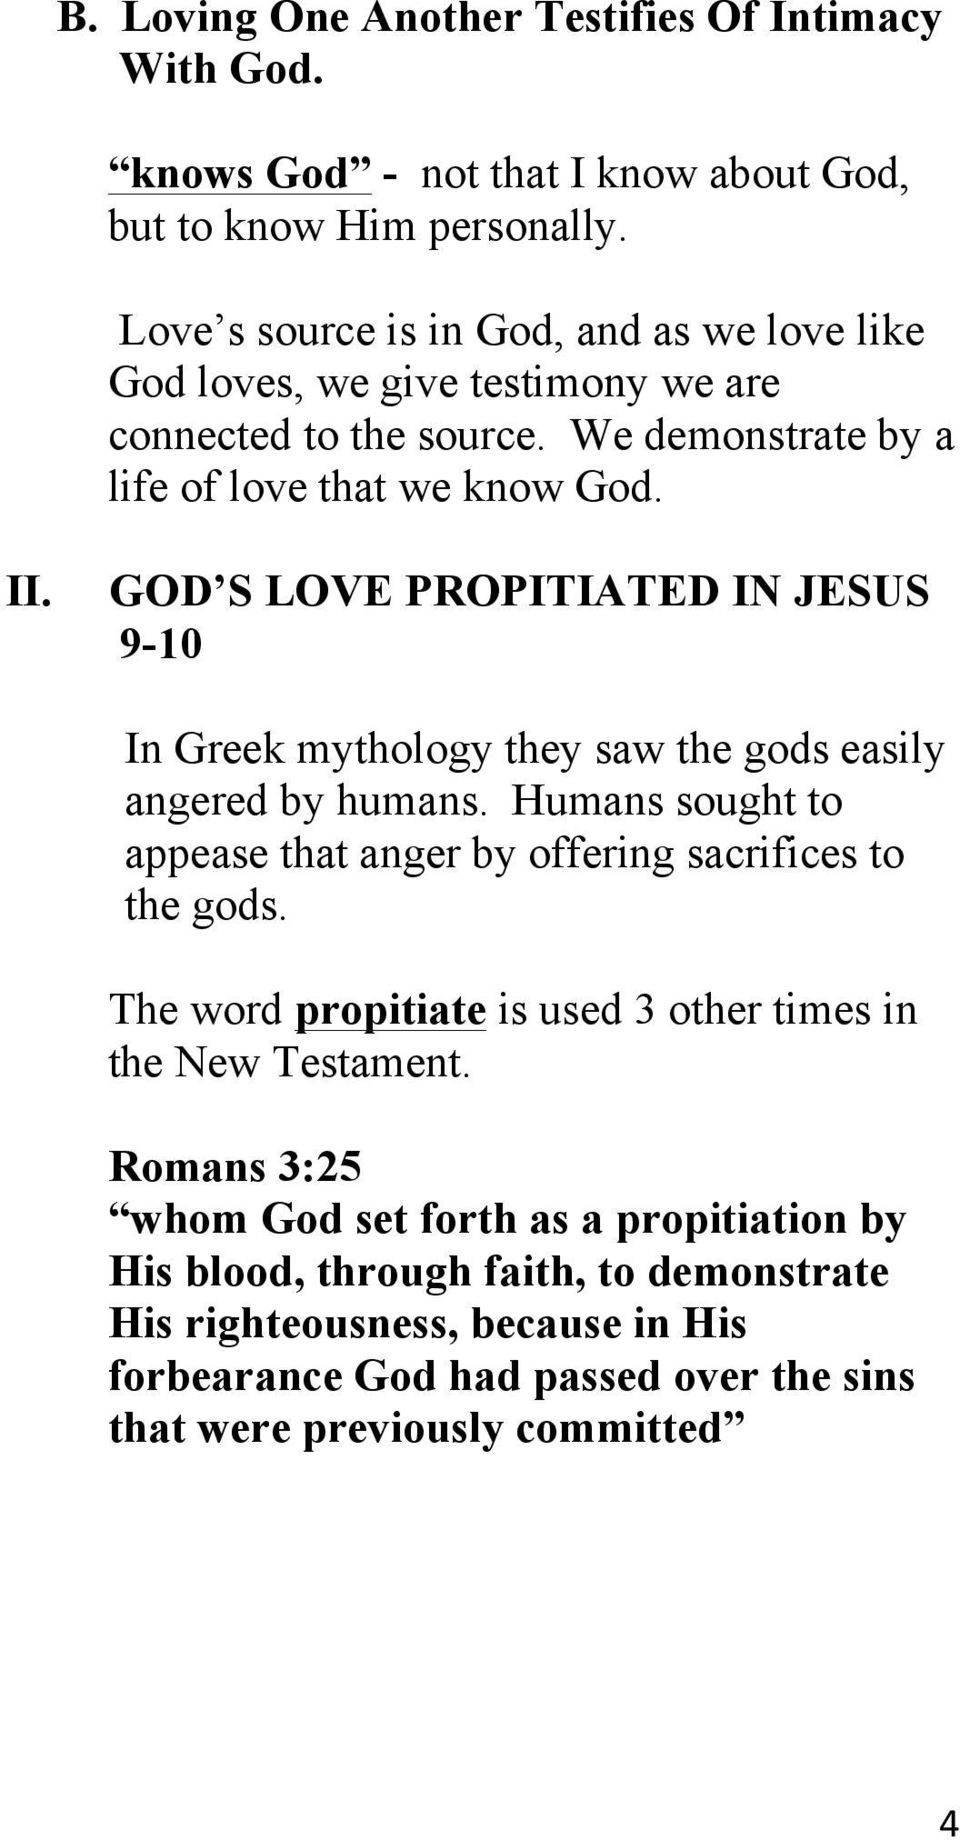 GOD S LOVE PROPITIATED IN JESUS 9-10 In Greek mythology they saw the gods easily angered by humans. Humans sought to appease that anger by offering sacrifices to the gods.